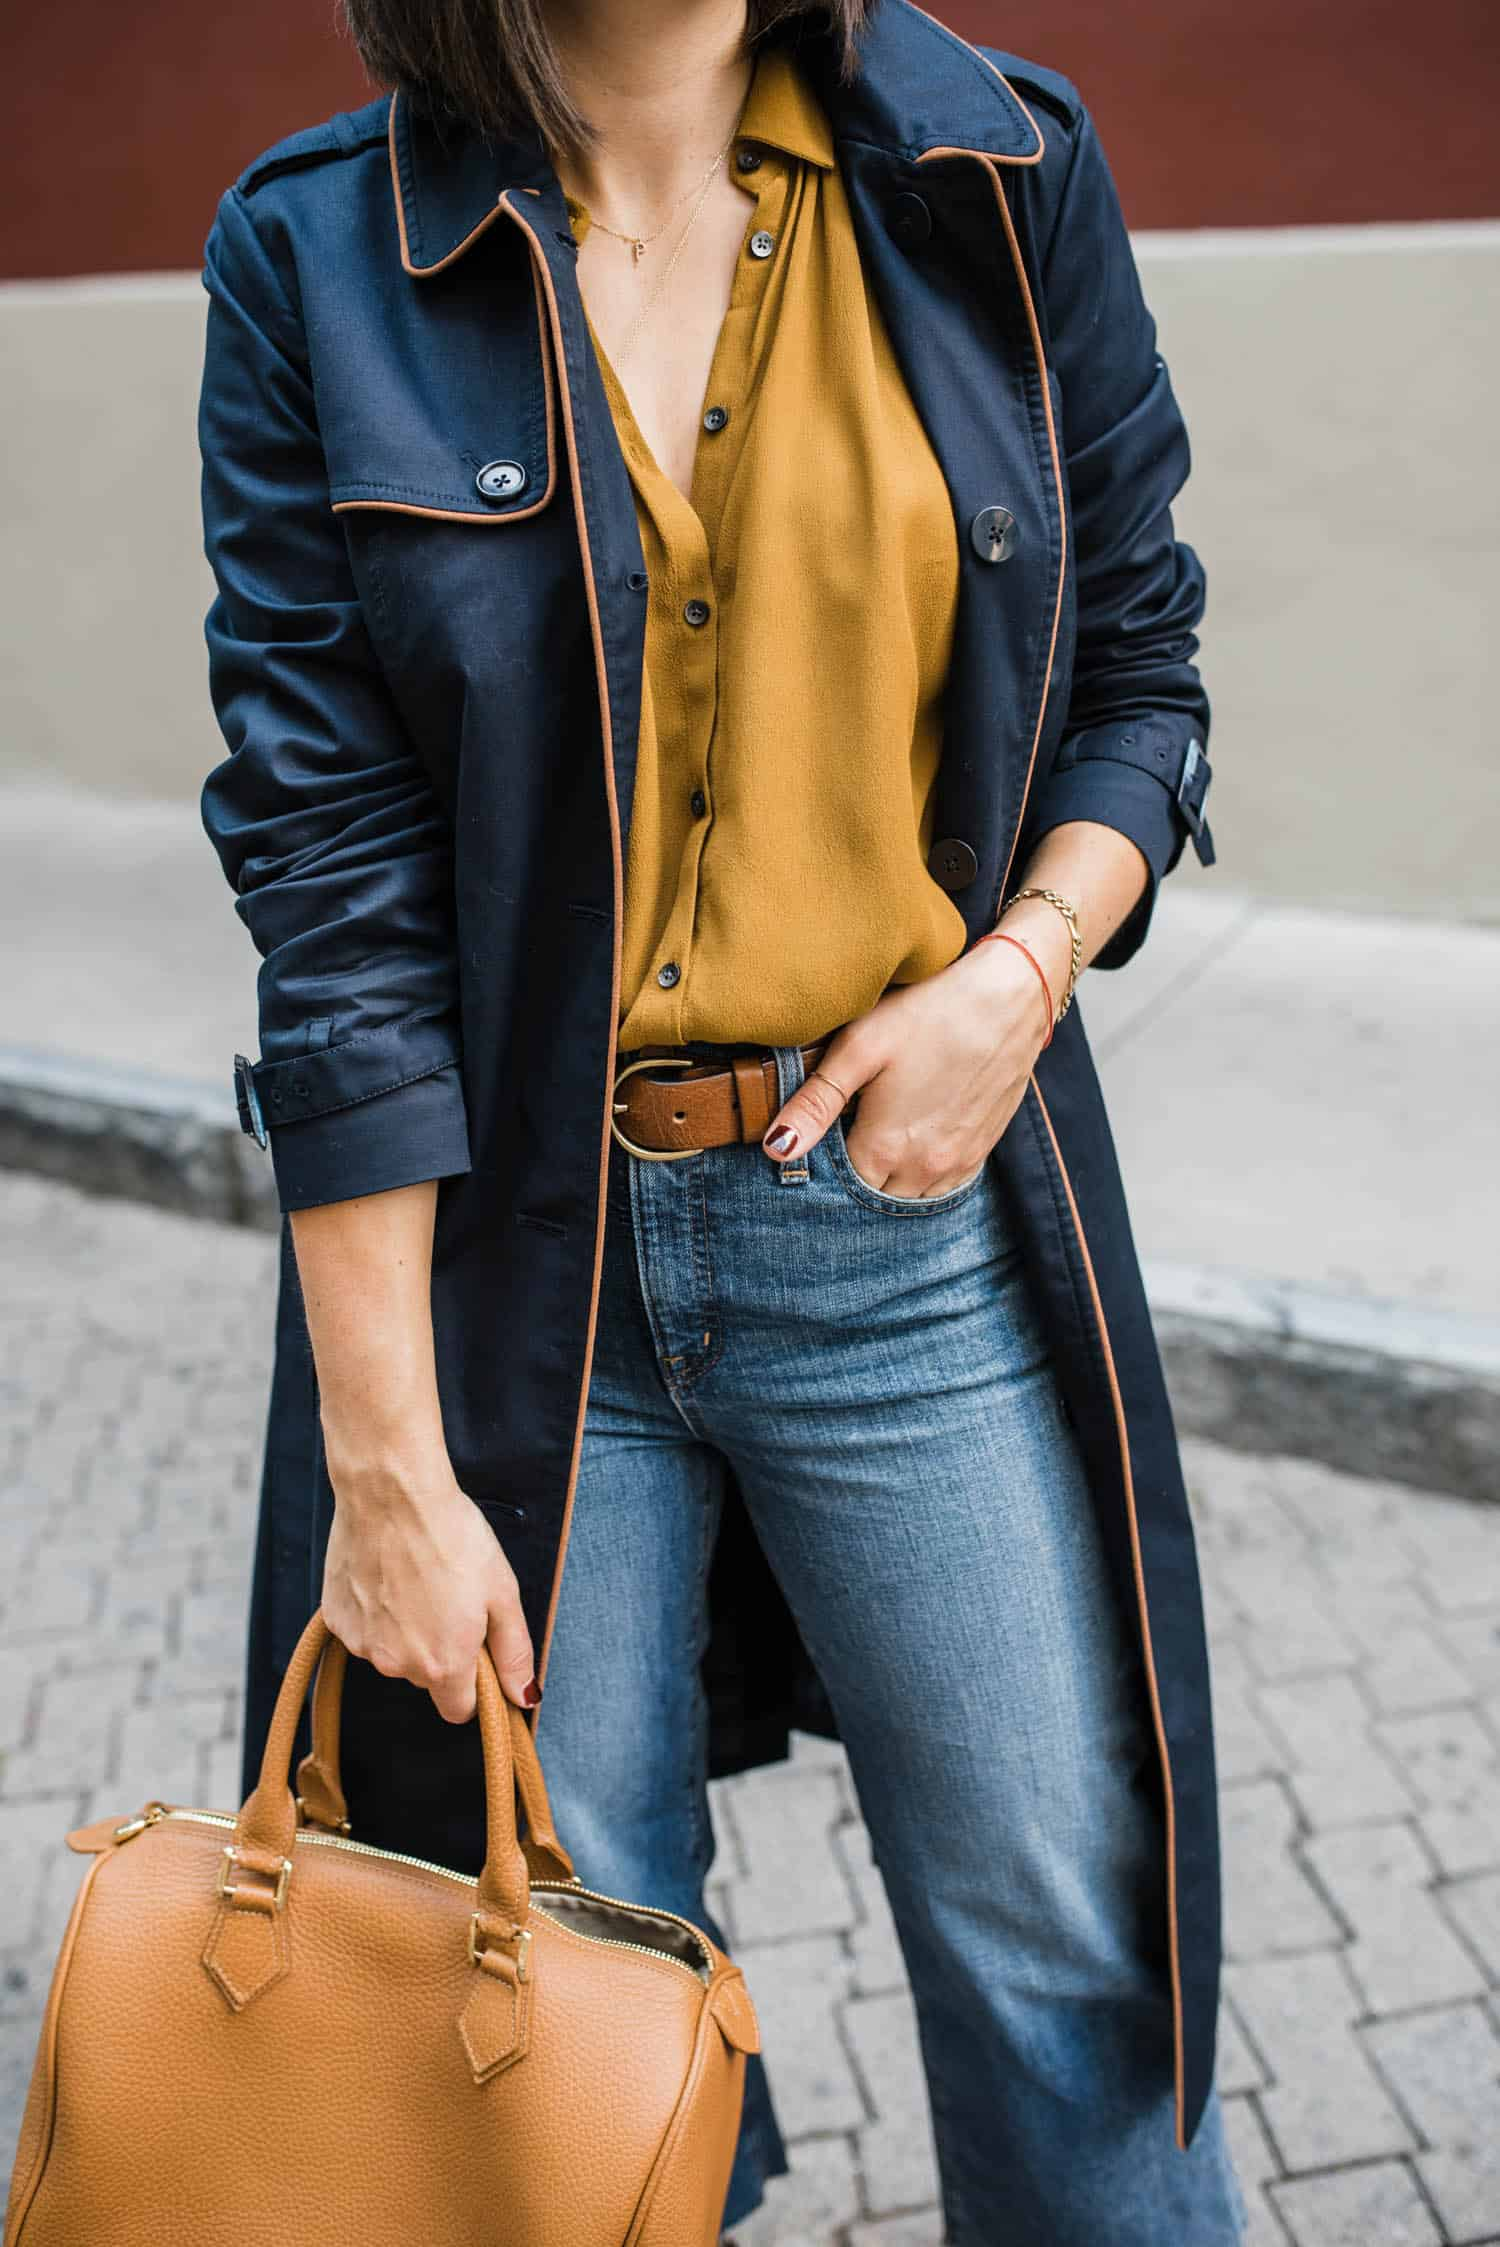 Style Tips To Feel More Put Together Instantly